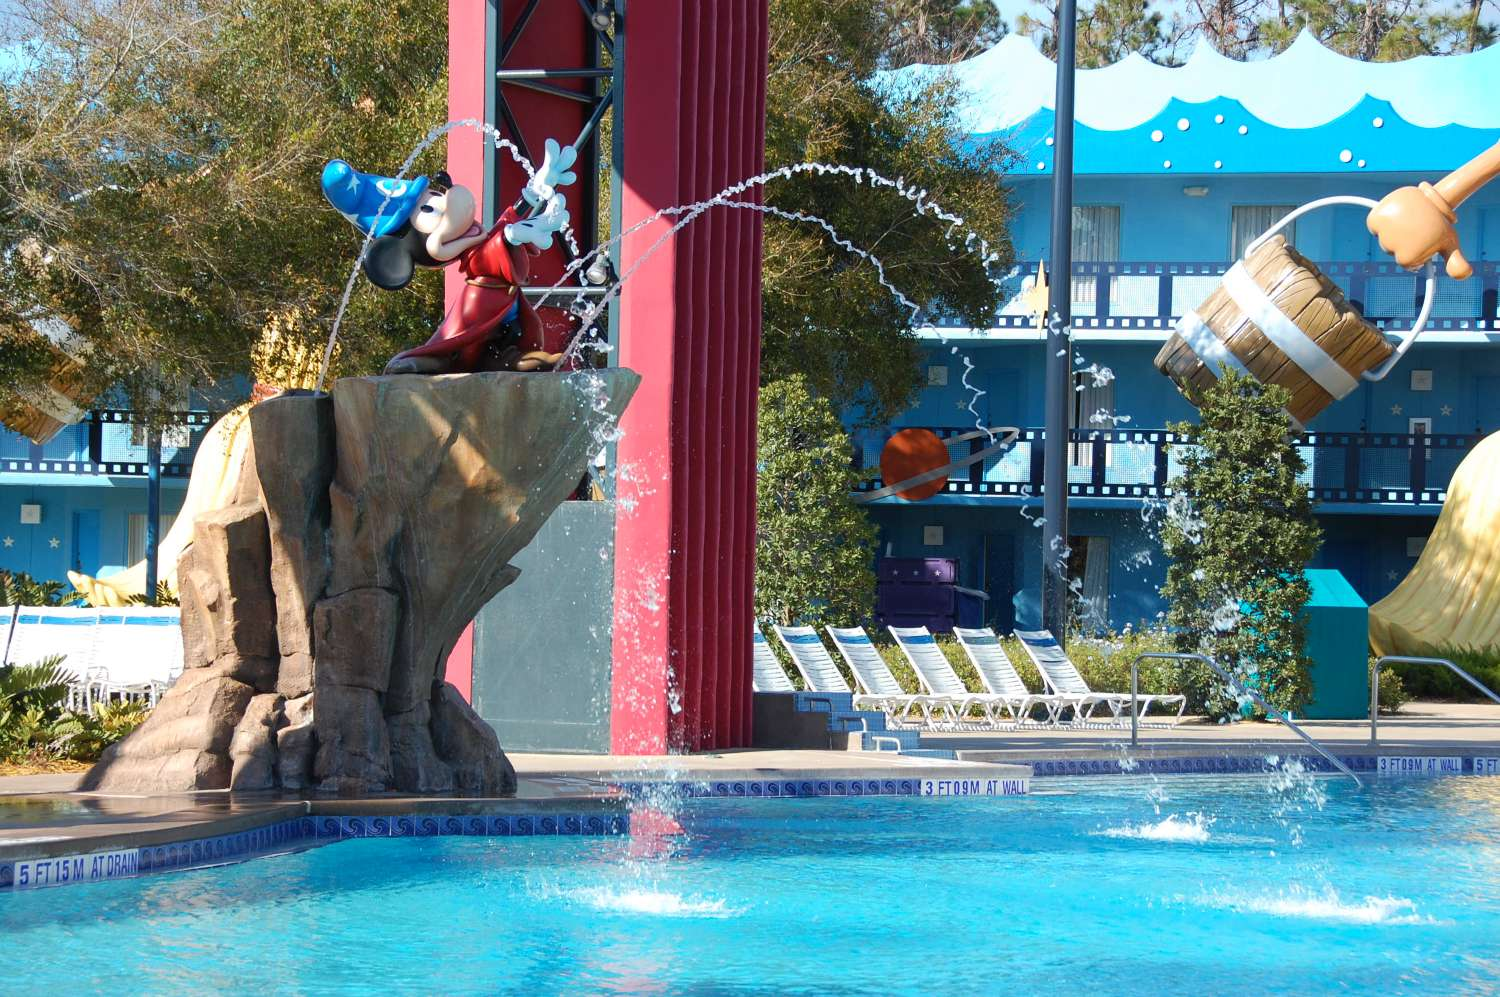 Sorcerer Mickey fountain at the Fantasia pool  at Disney's All-Star Movies Resort